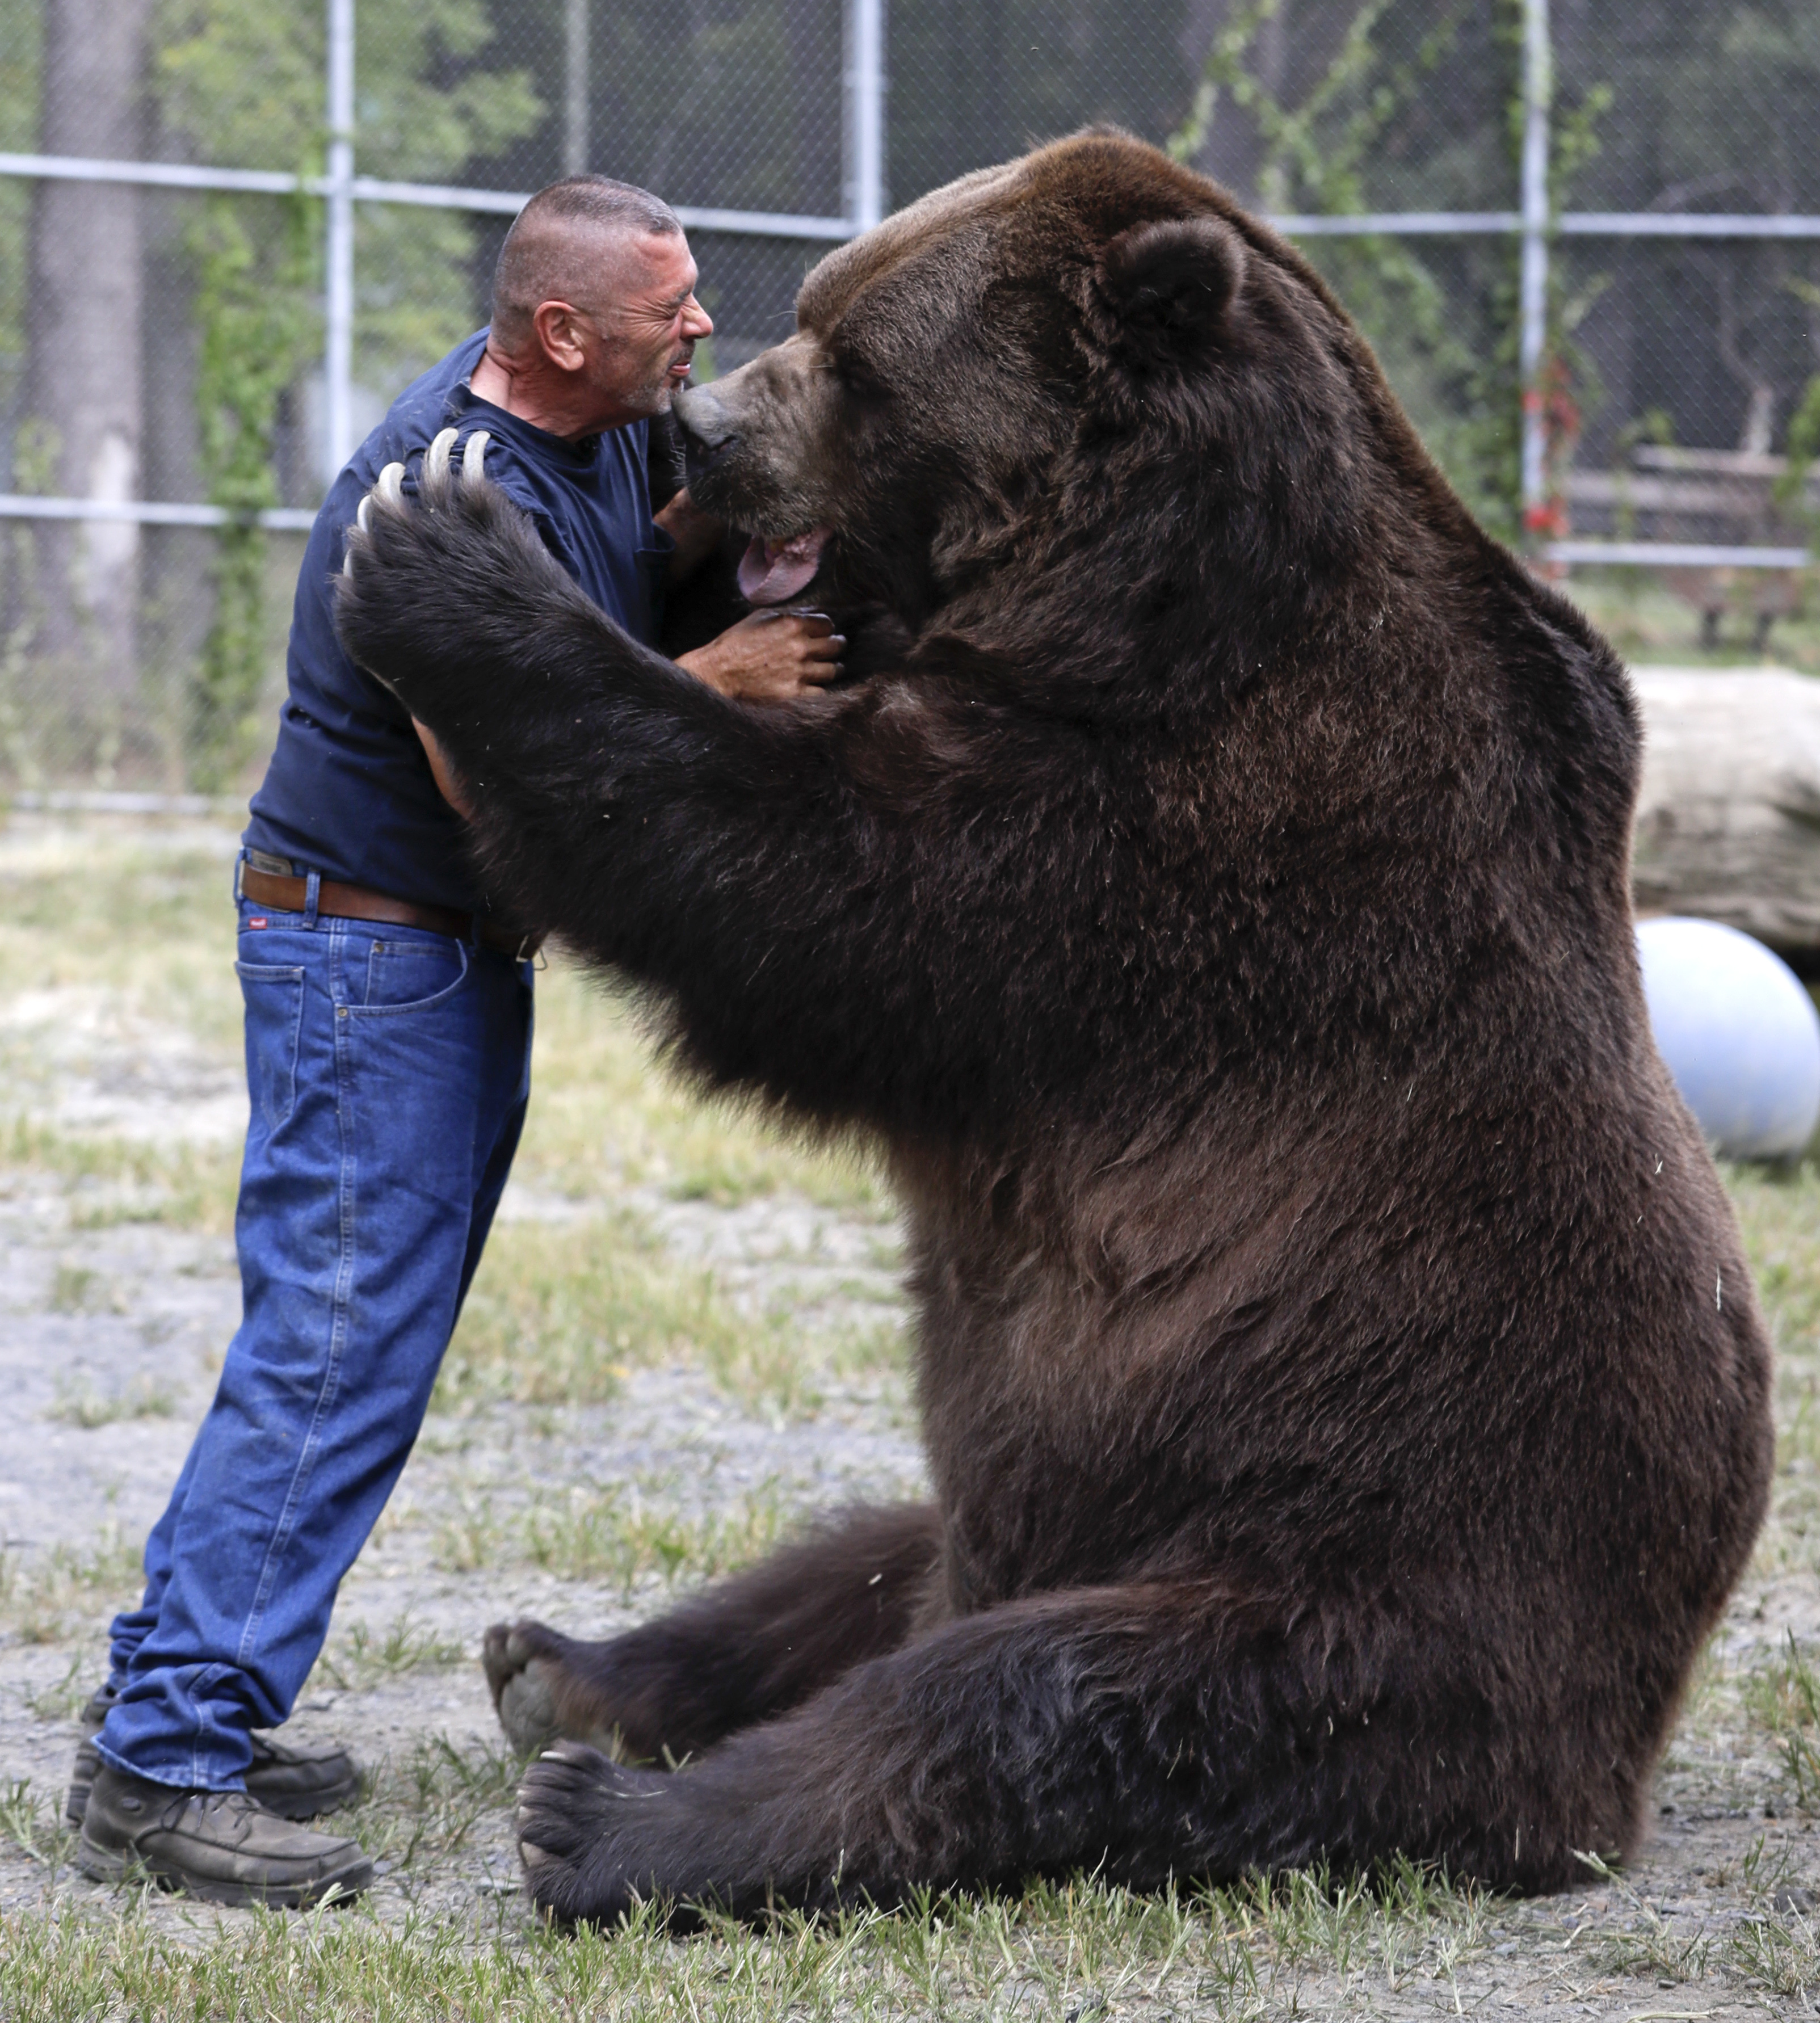 otisville ny bear with him man grabs attention for. Black Bedroom Furniture Sets. Home Design Ideas